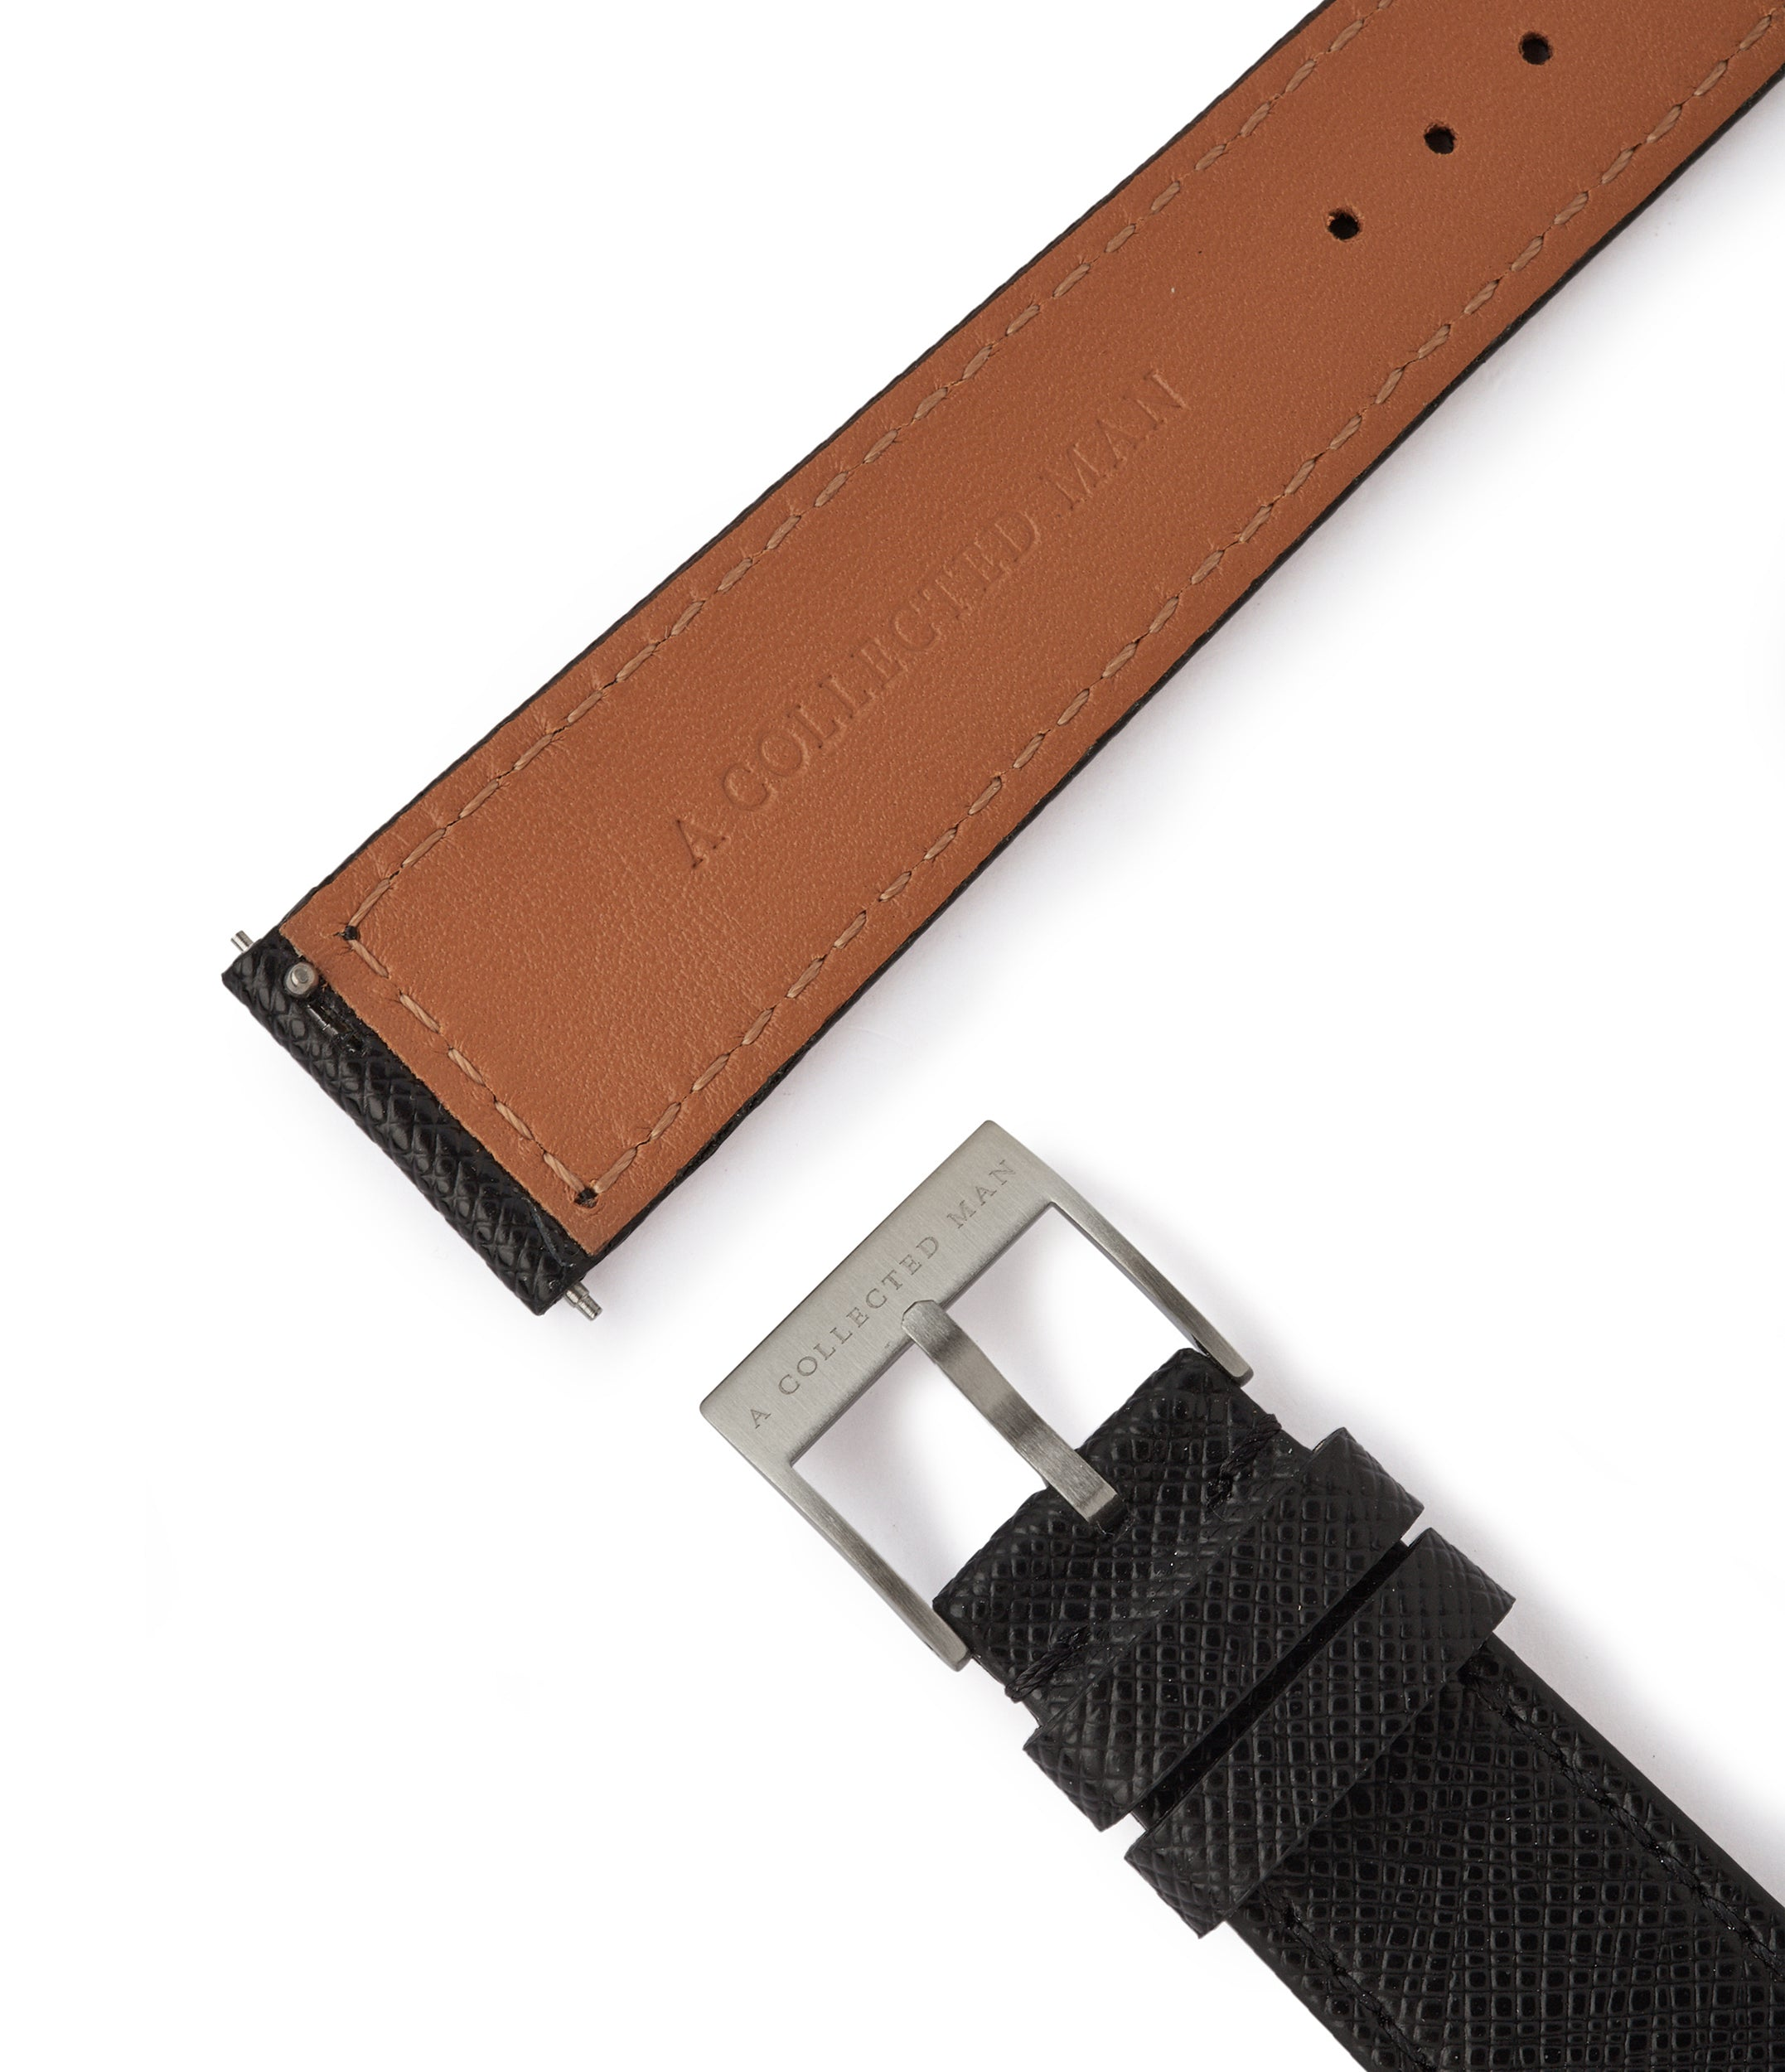 shop black Saffiano Milano cross-grained luxury leather 20mm watch strap with boxed stitching for sale online at A Collected Man London